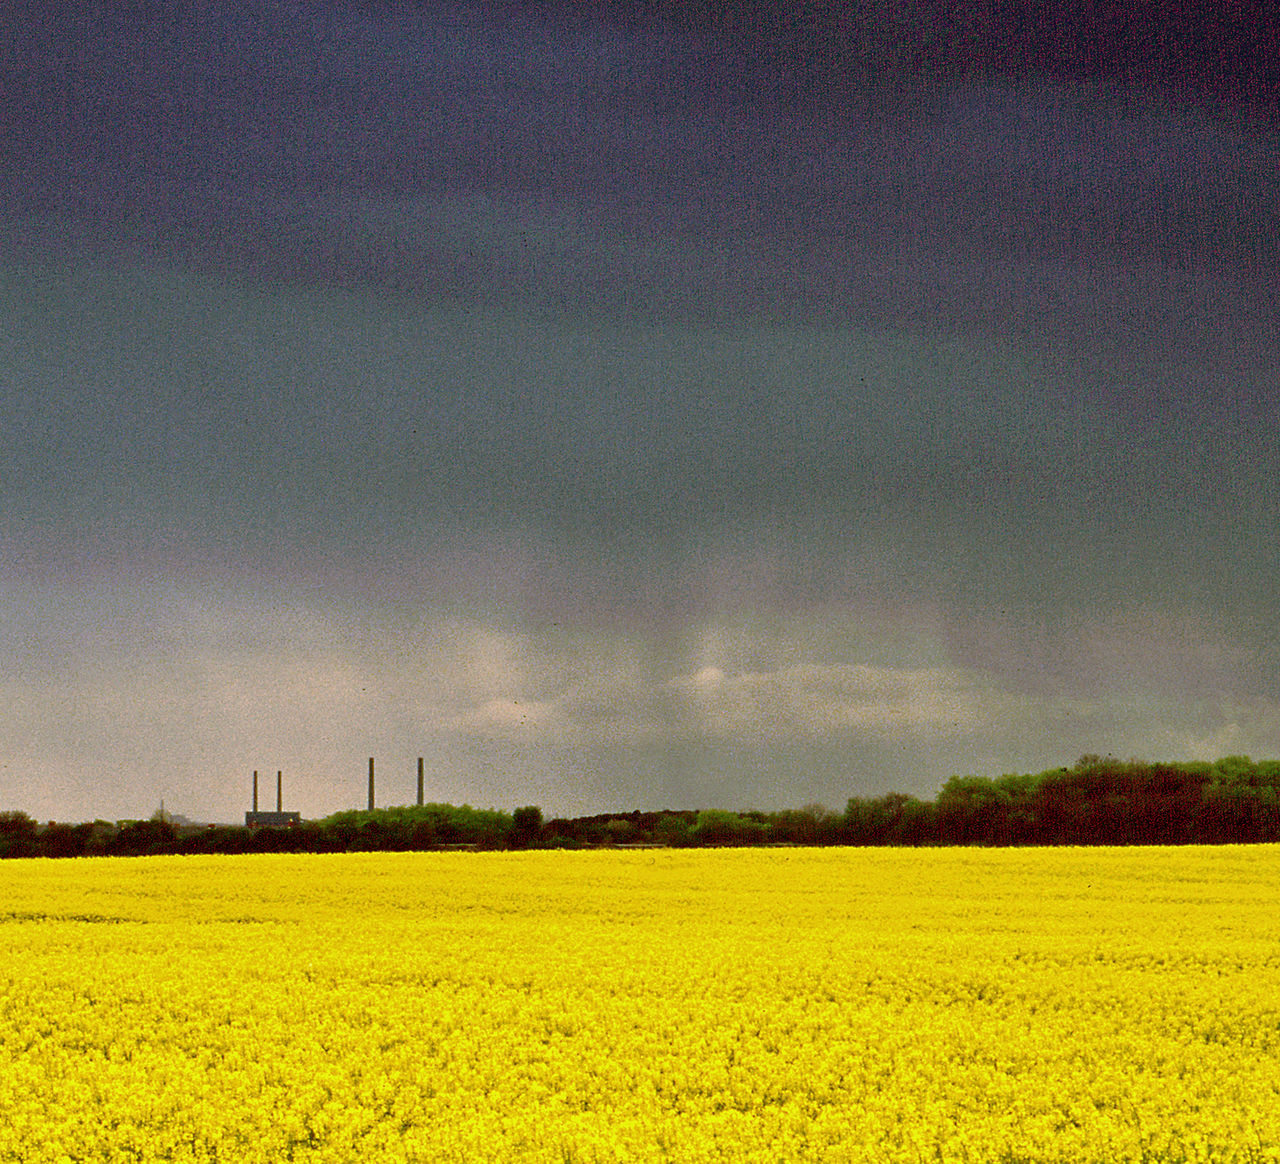 rainstorm Agriculture Cloud - Sky Crop  Cultivated Land Day Field Fragility Growth Horizon Over Land Idyllic Landscape Nature No People Non-urban Scene Outdoors Rainstorm, Rural Scene Scenics Sky Tranquil Scene Tranquility Yellow